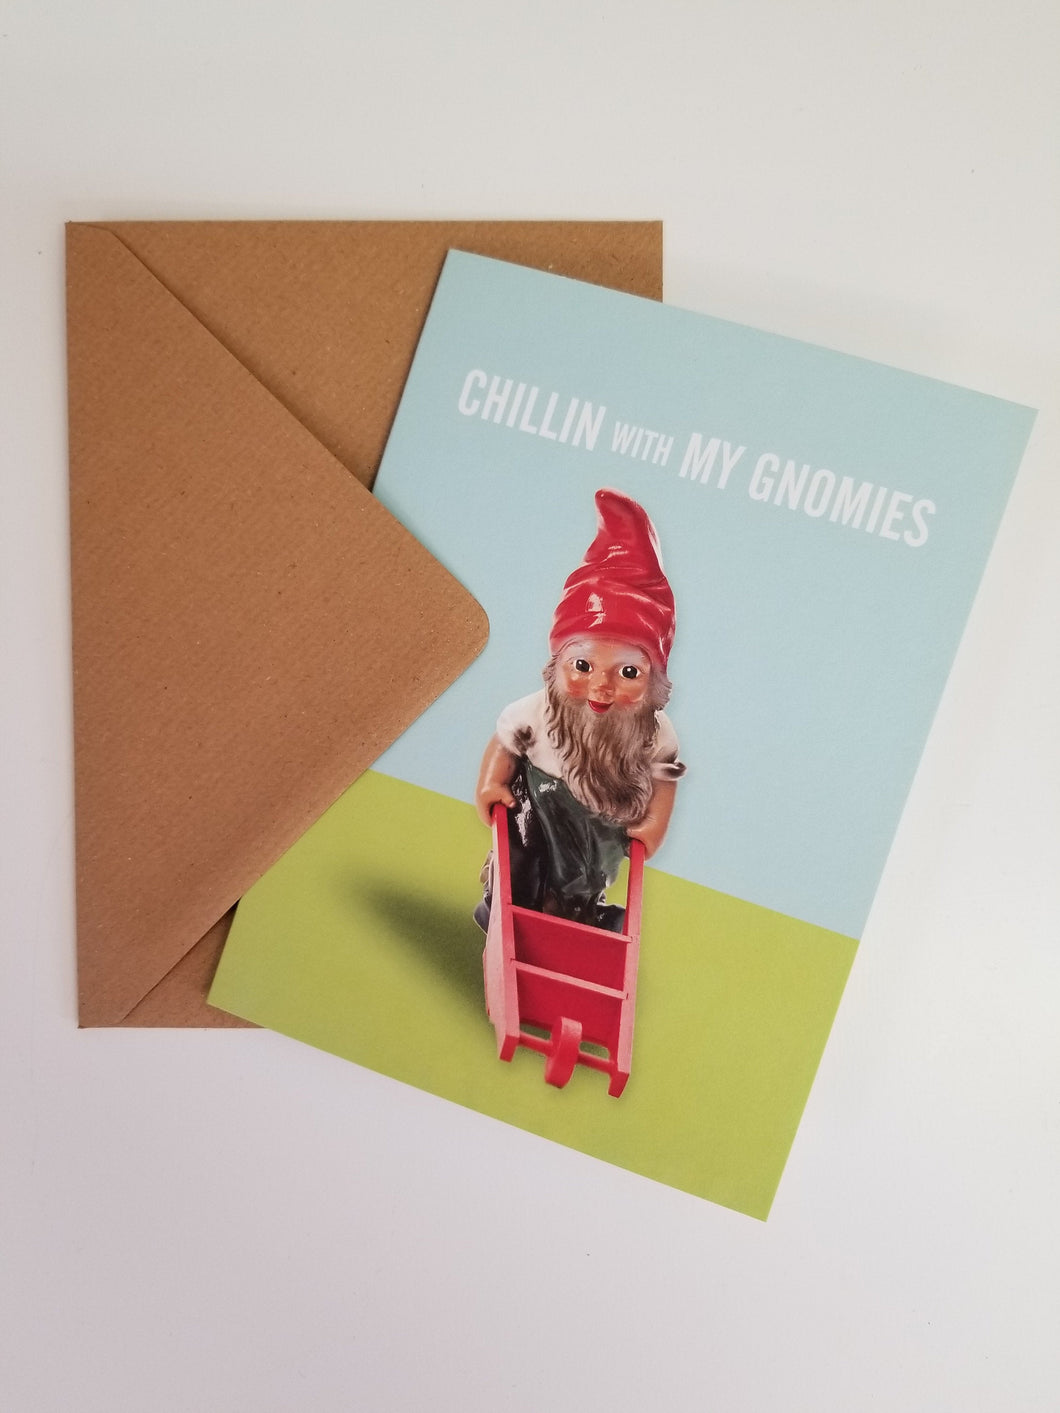 Chillin with my gnomies greeting card